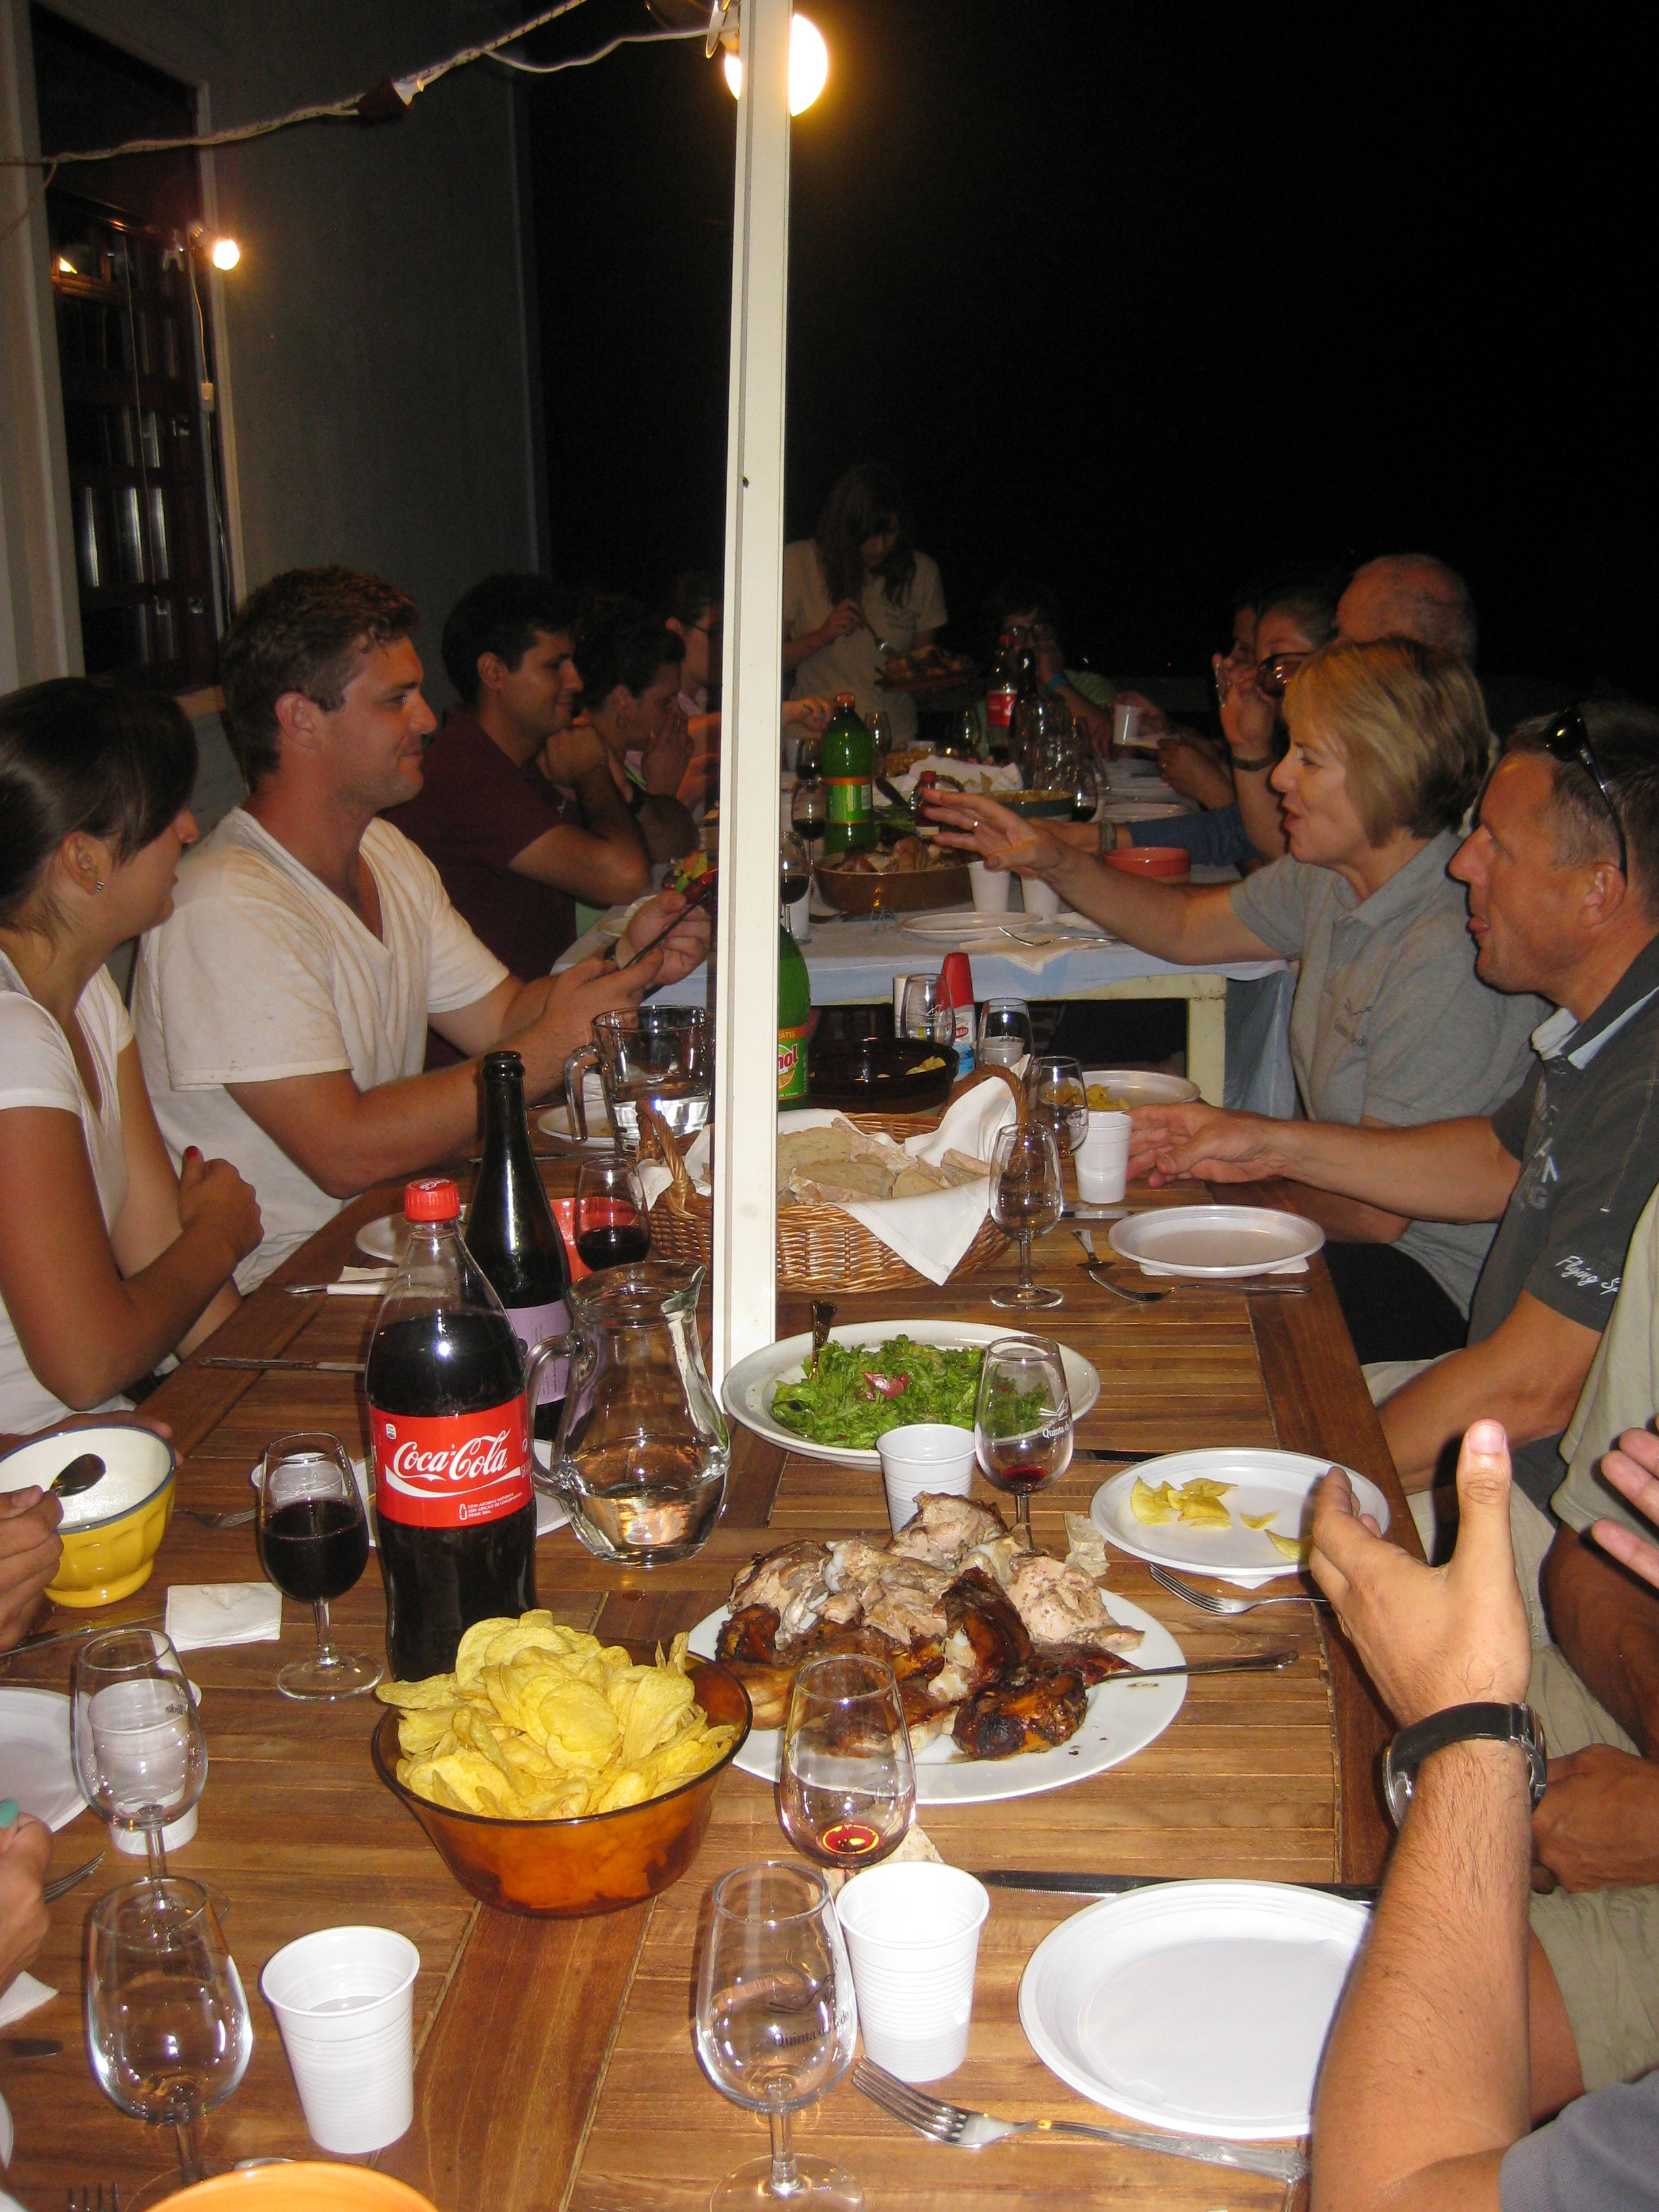 Conviviality: notice the wine glasses are empty and the Coke bottles are full